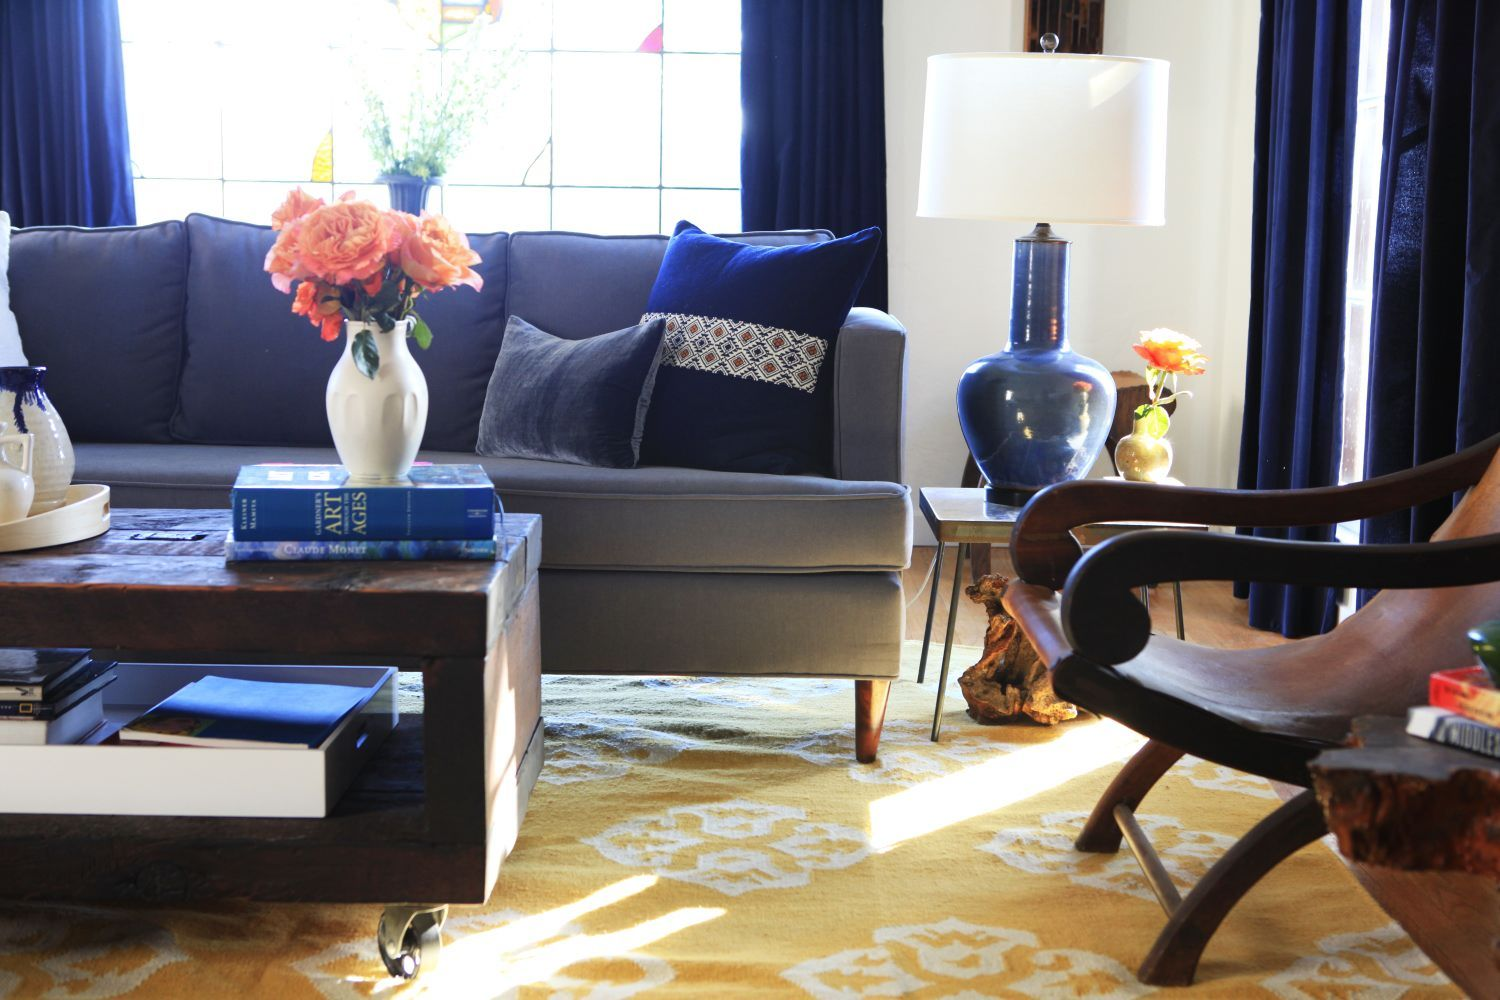 Navy blue curtains living room - Andalusian Rug From West Elm Via Emily Henderson Photo By Laure Joliet Navy Blue